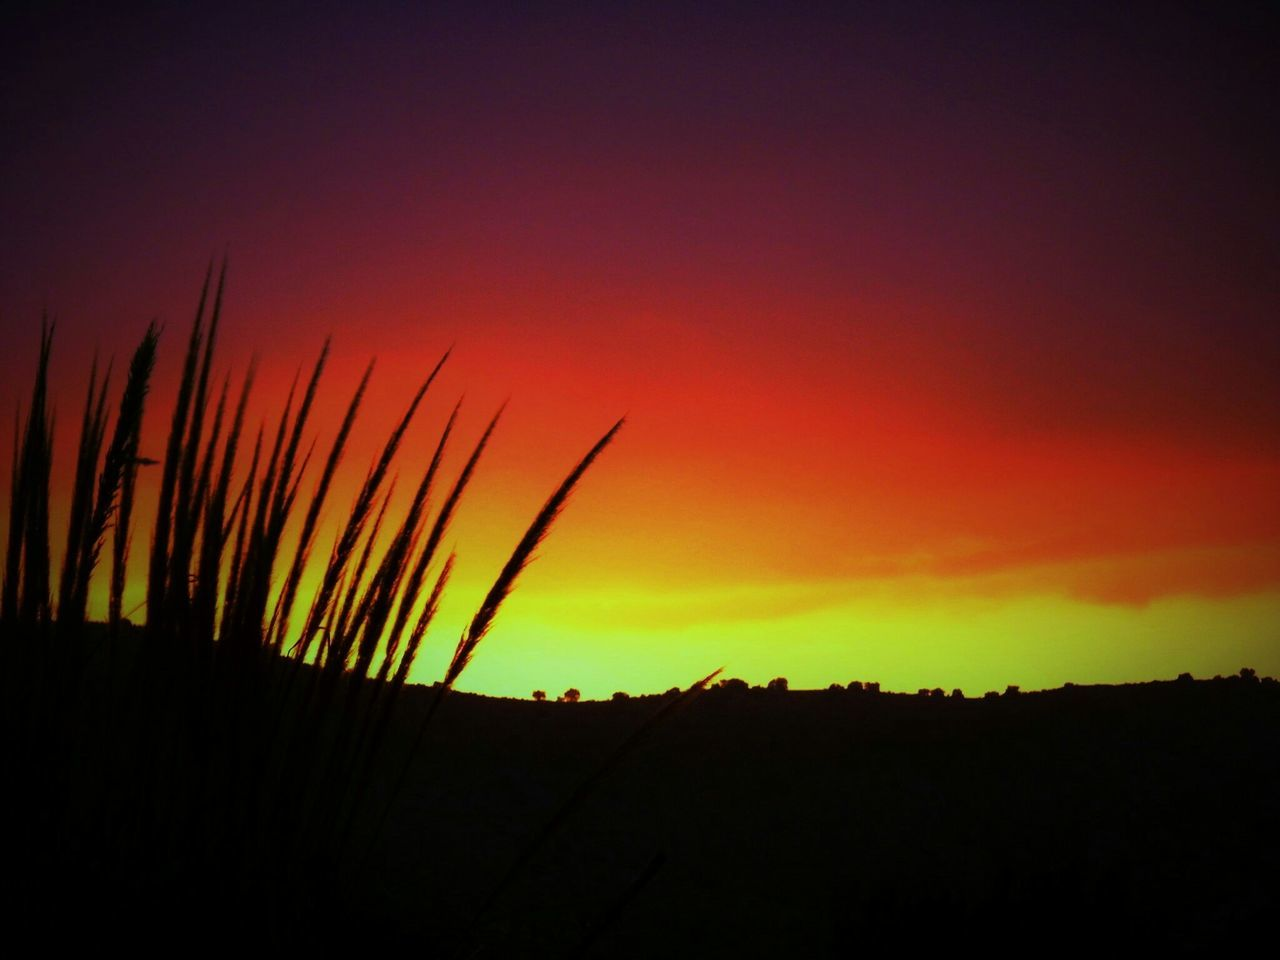 sunset, nature, silhouette, beauty in nature, orange color, tranquil scene, scenics, sky, tranquility, growth, dusk, no people, outdoors, plant, day